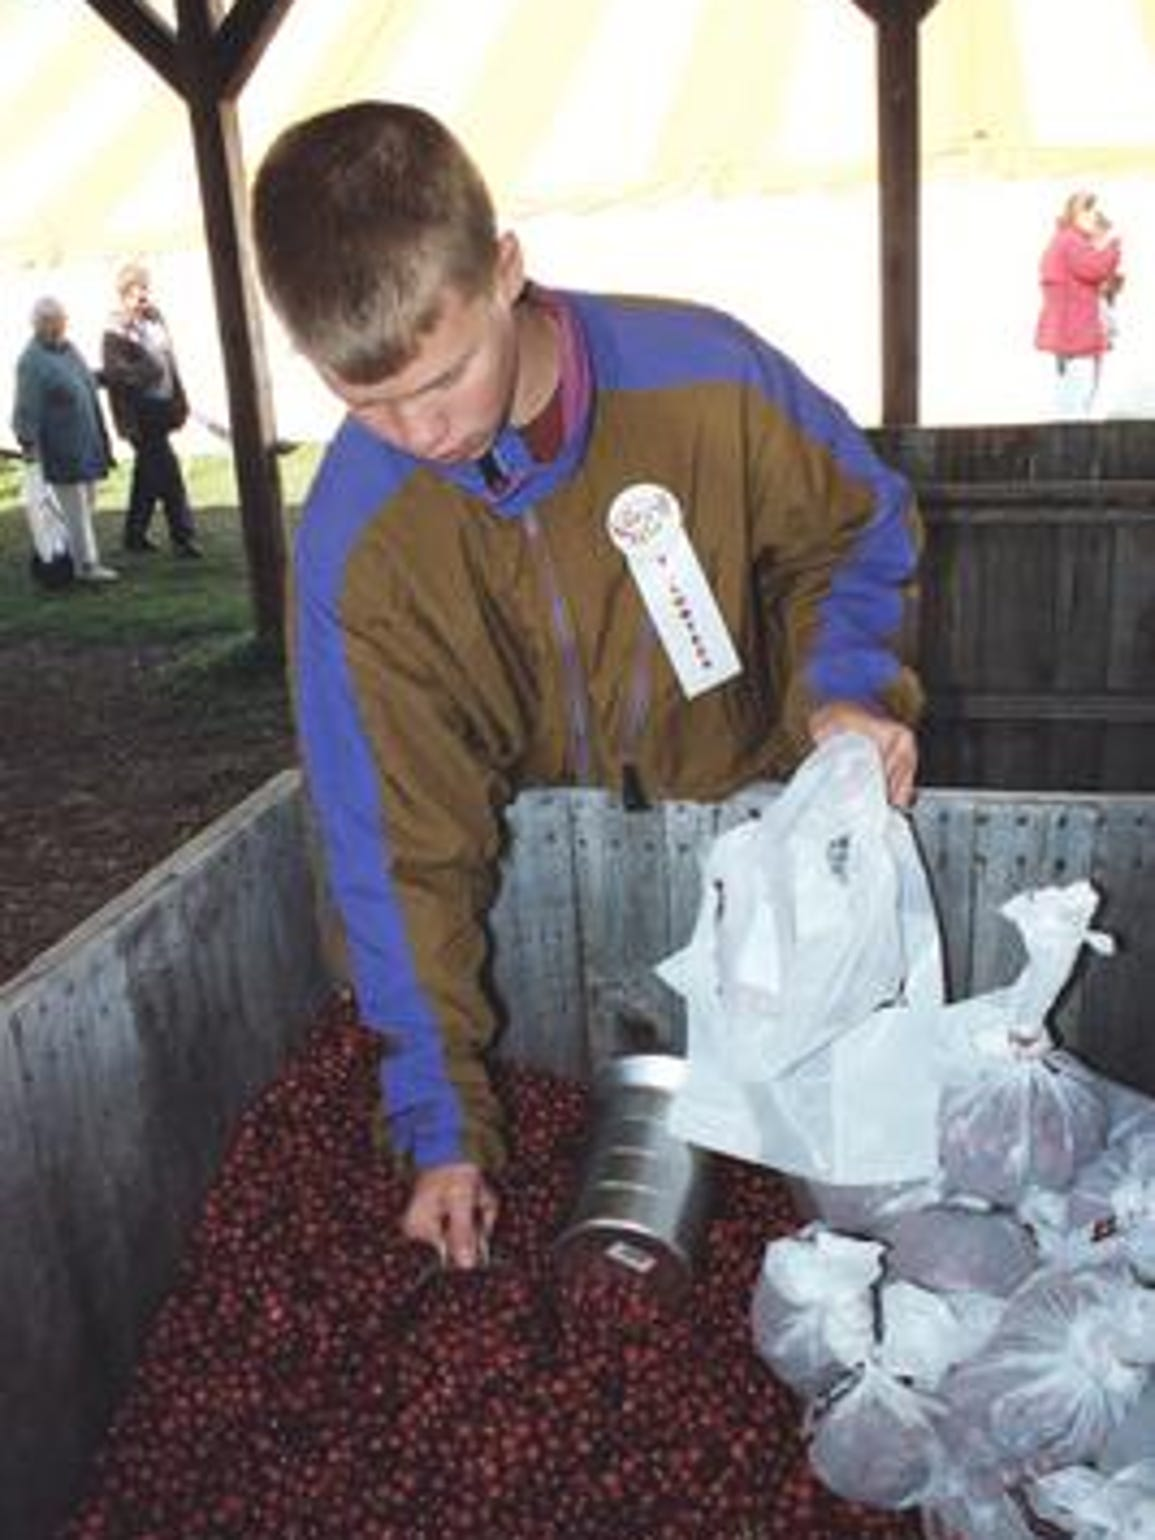 A boy scoops cranberries from a crate during Cranberry